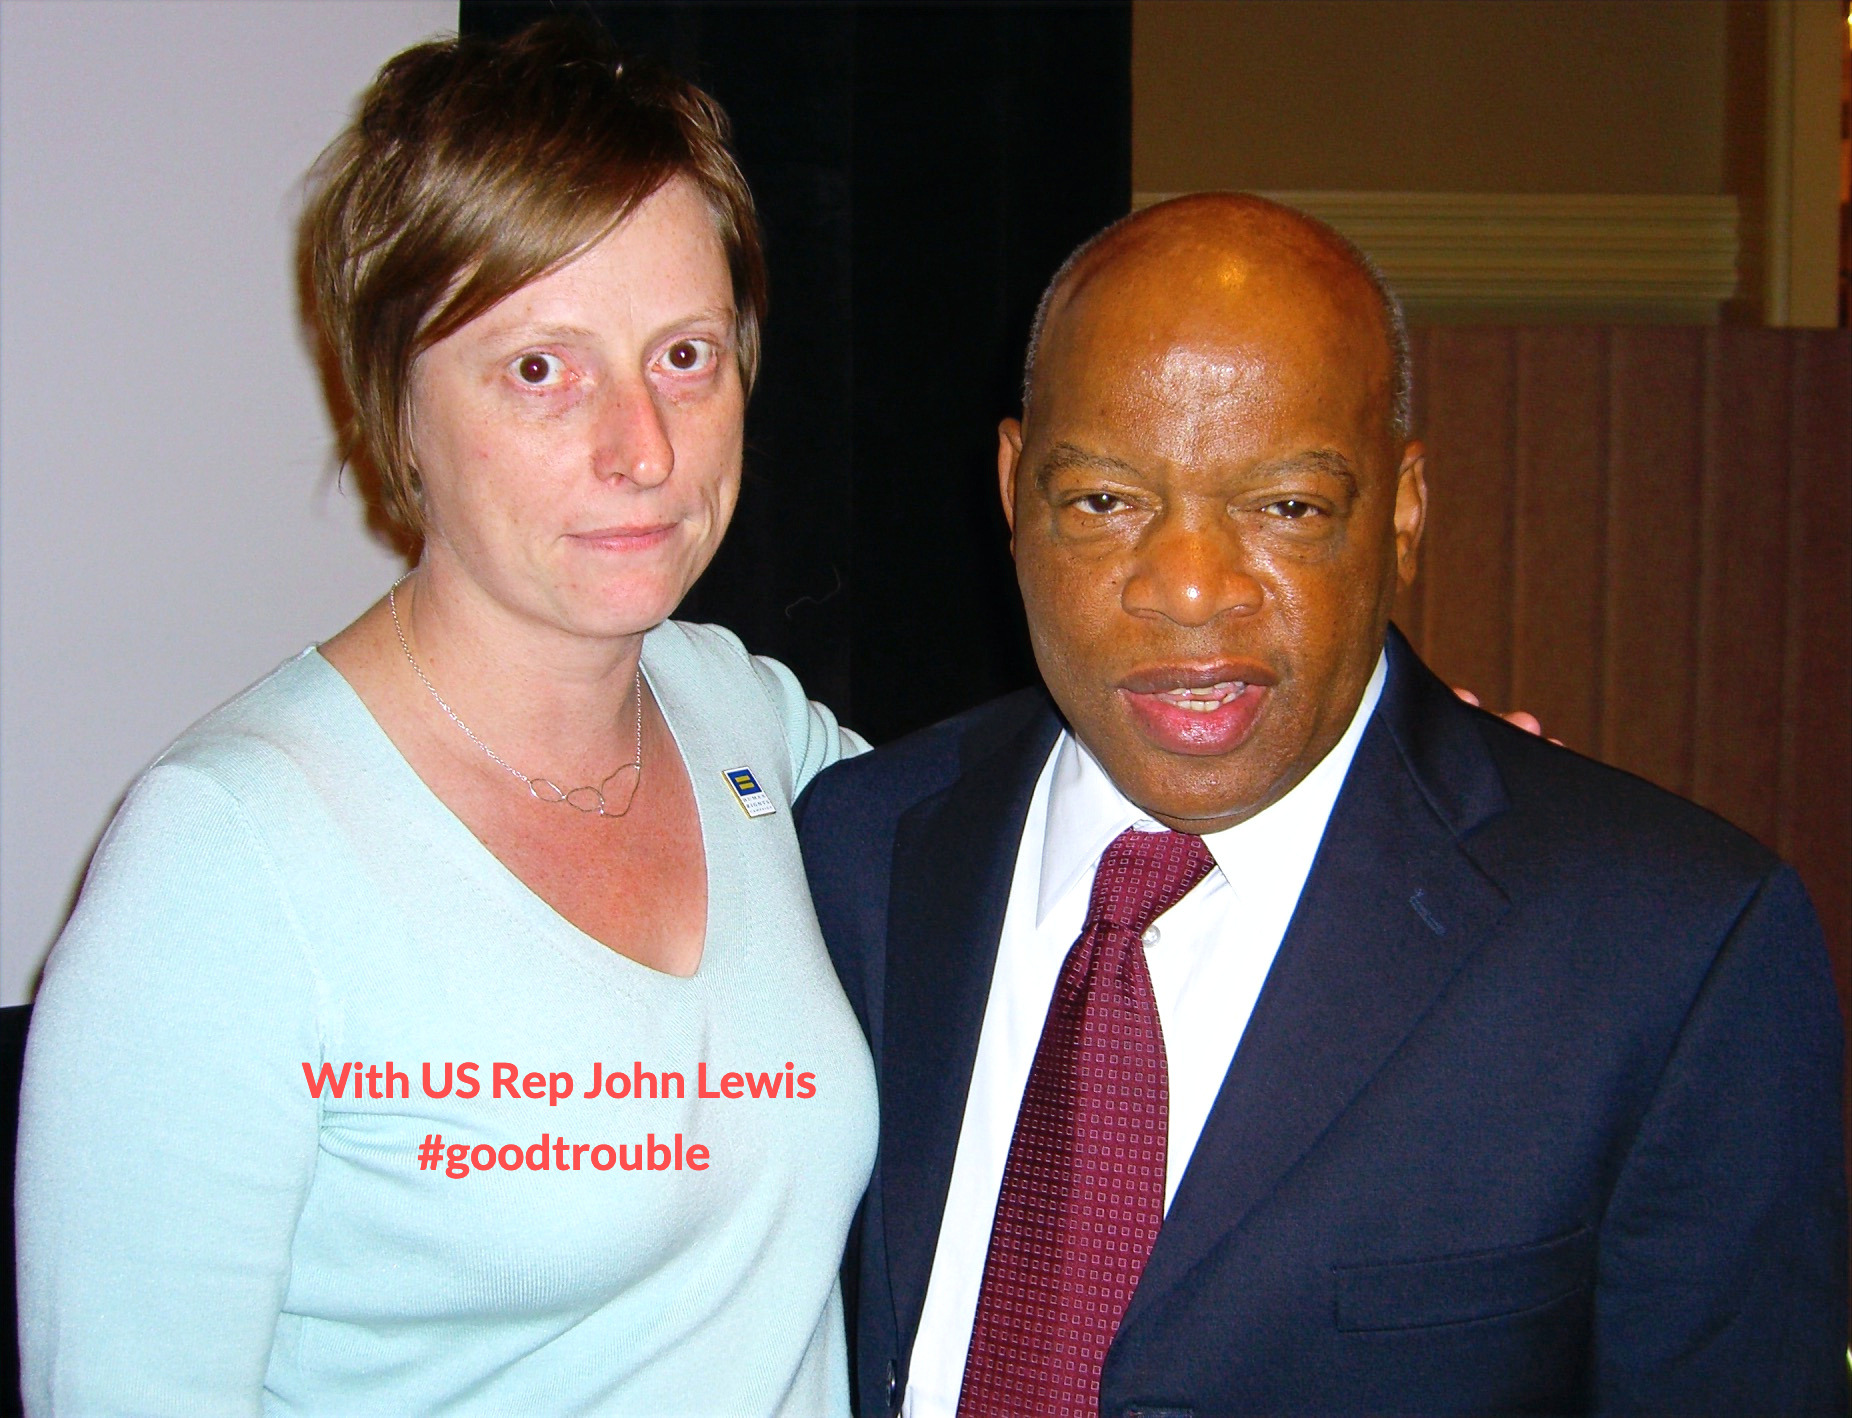 with U.S. Rep John Lewis